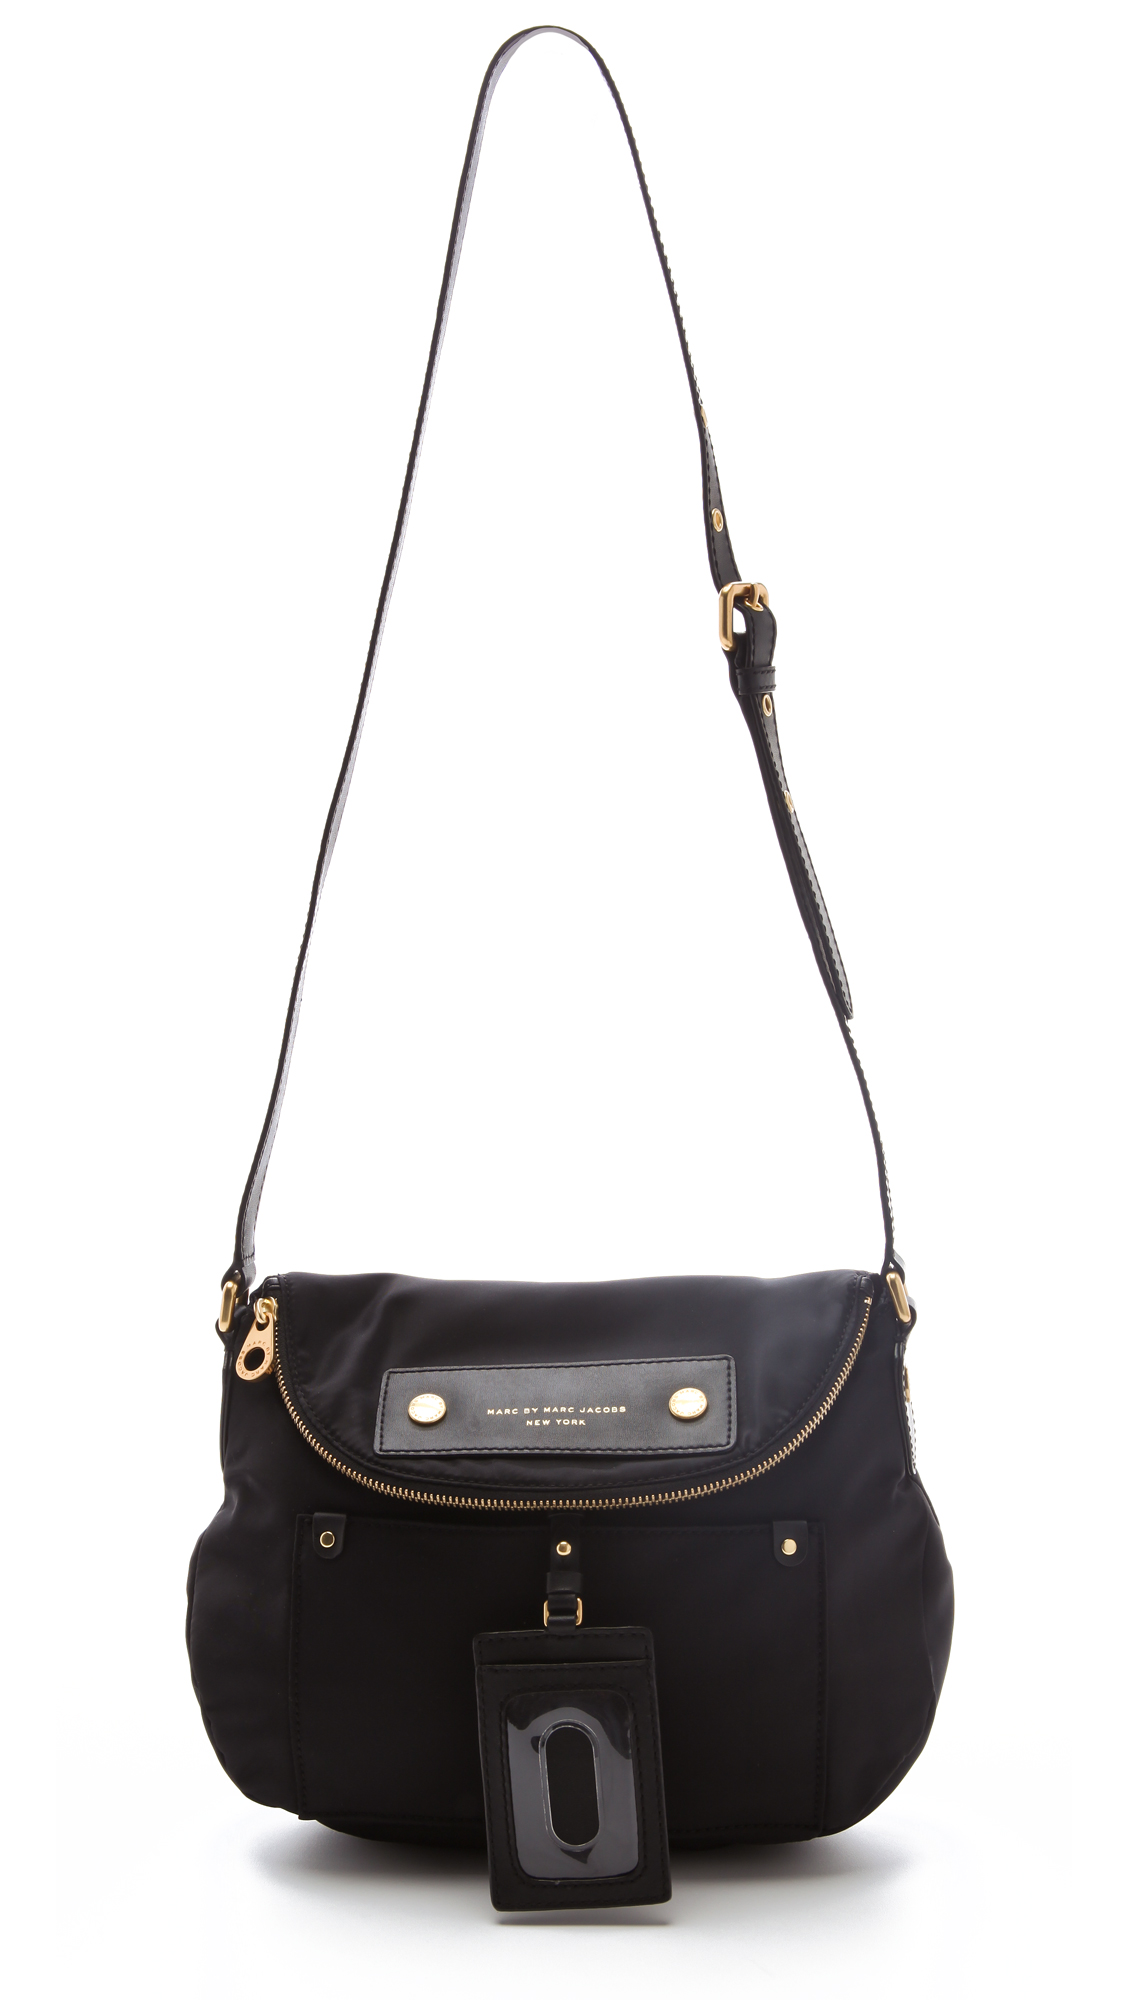 68423fb9410b Marc by Marc Jacobs Preppy Nylon Natasha Bag